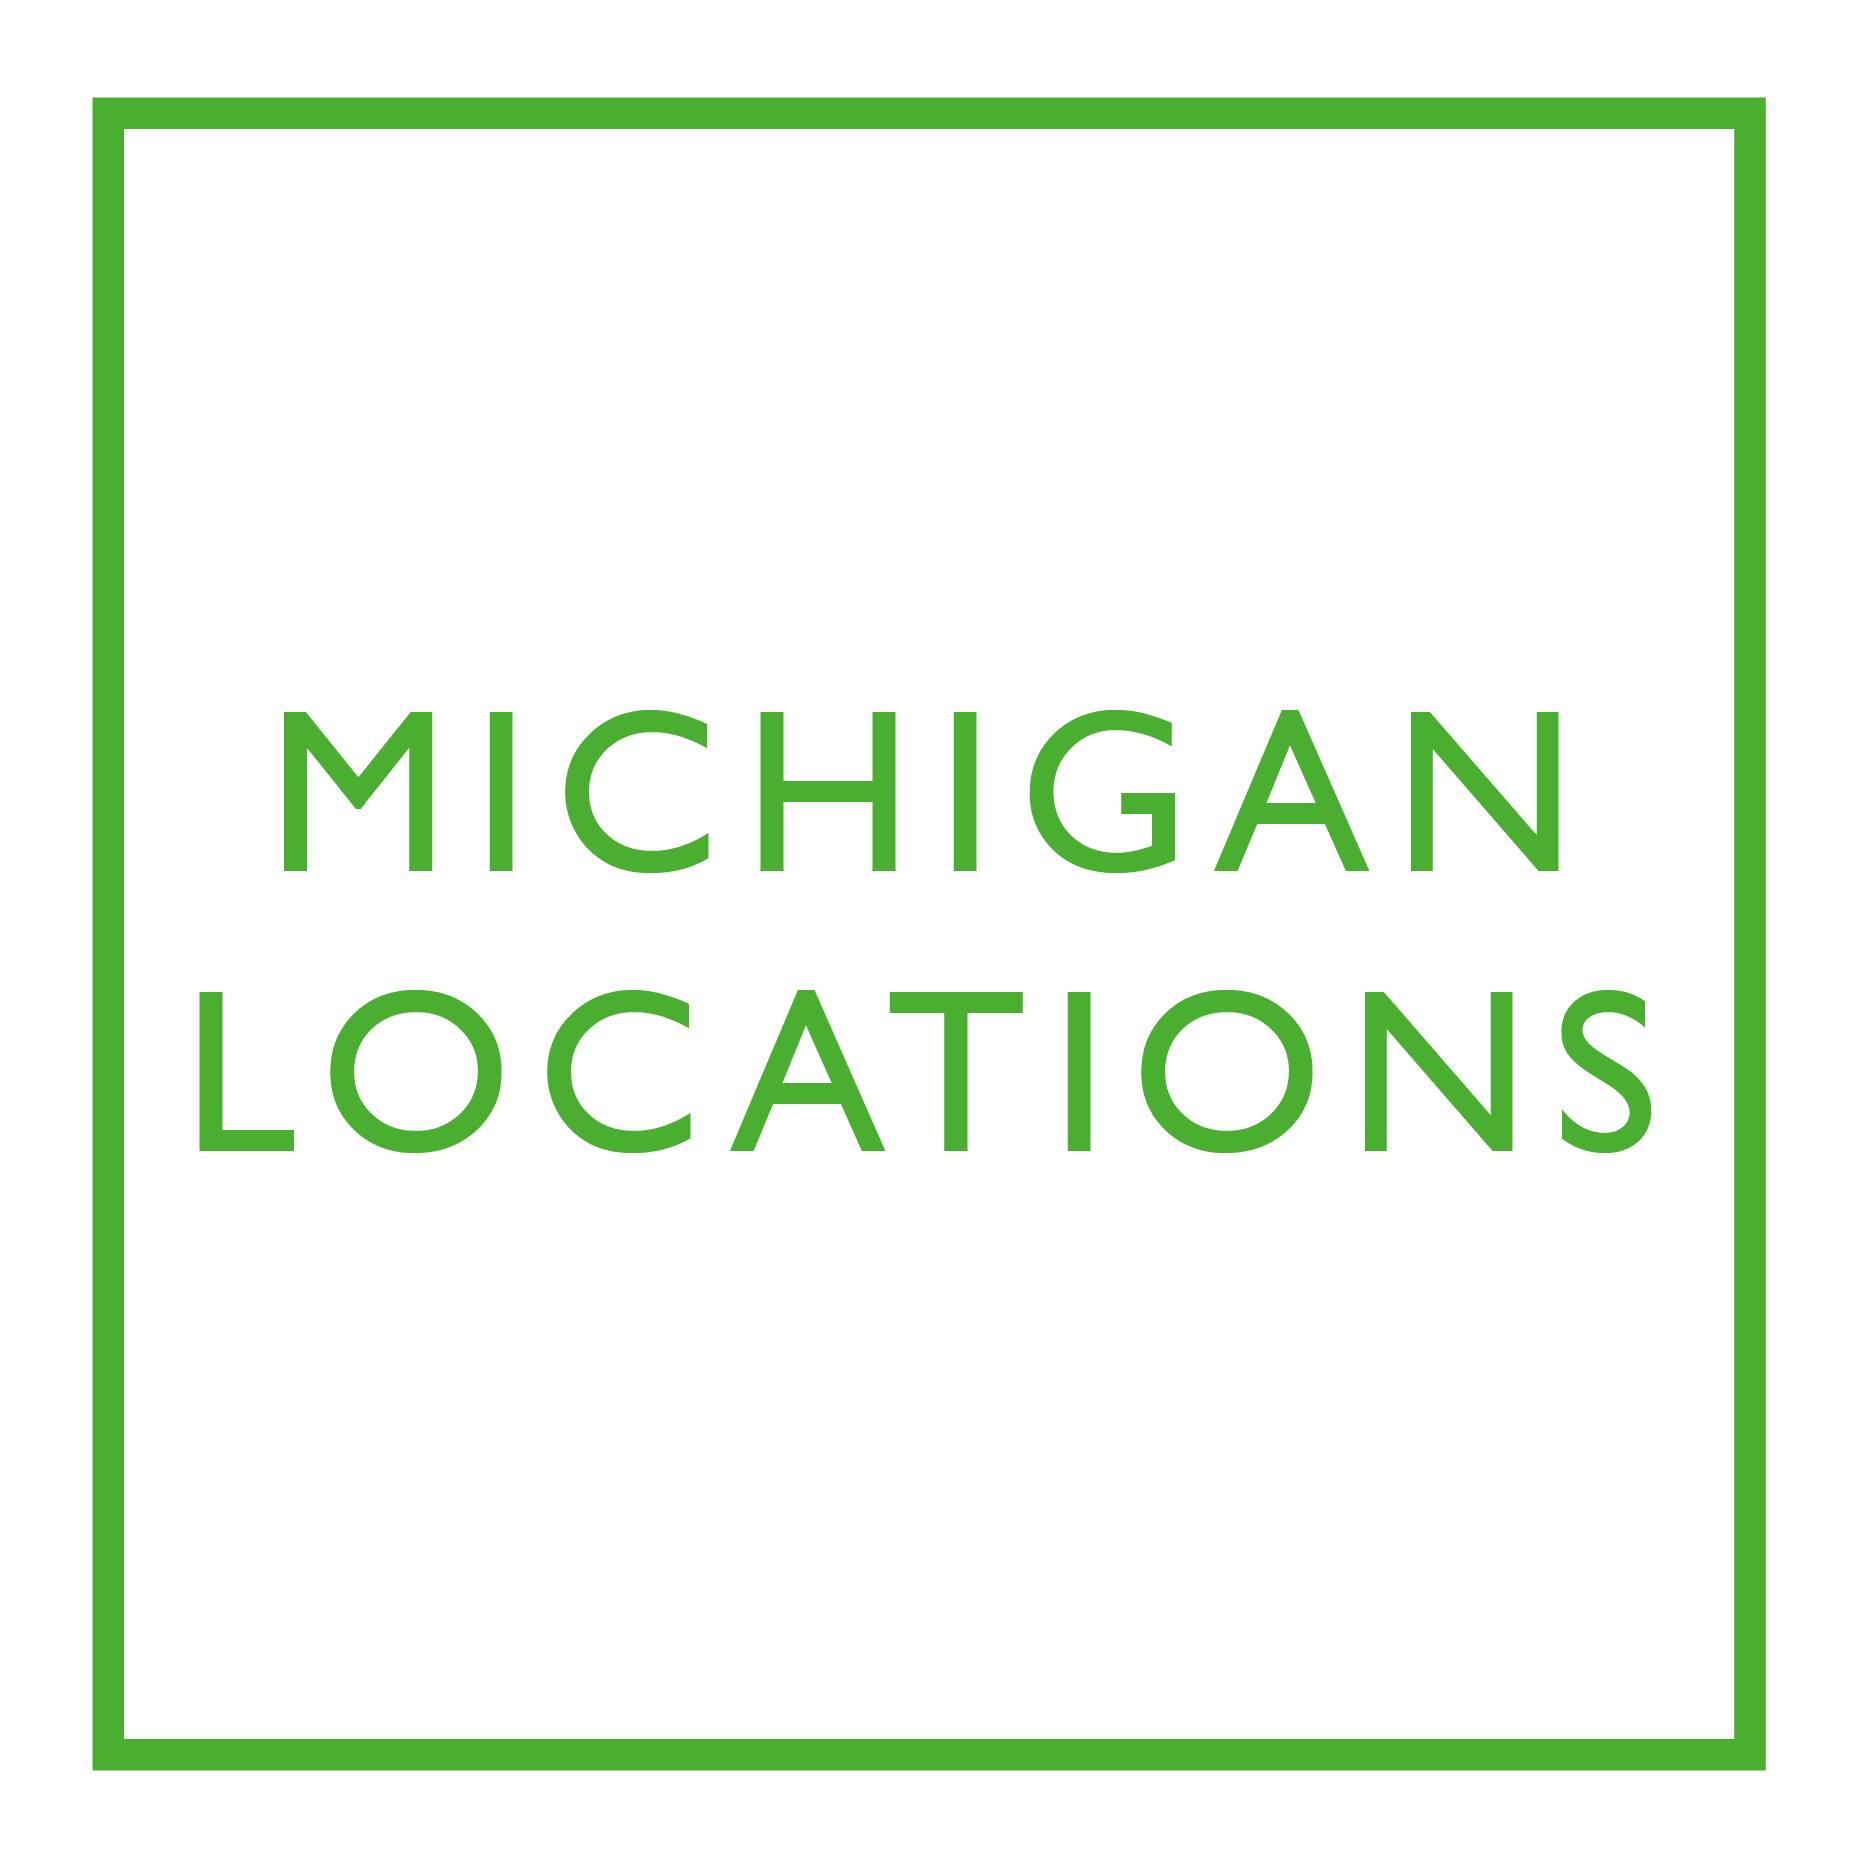 Check out our locations in Michigan